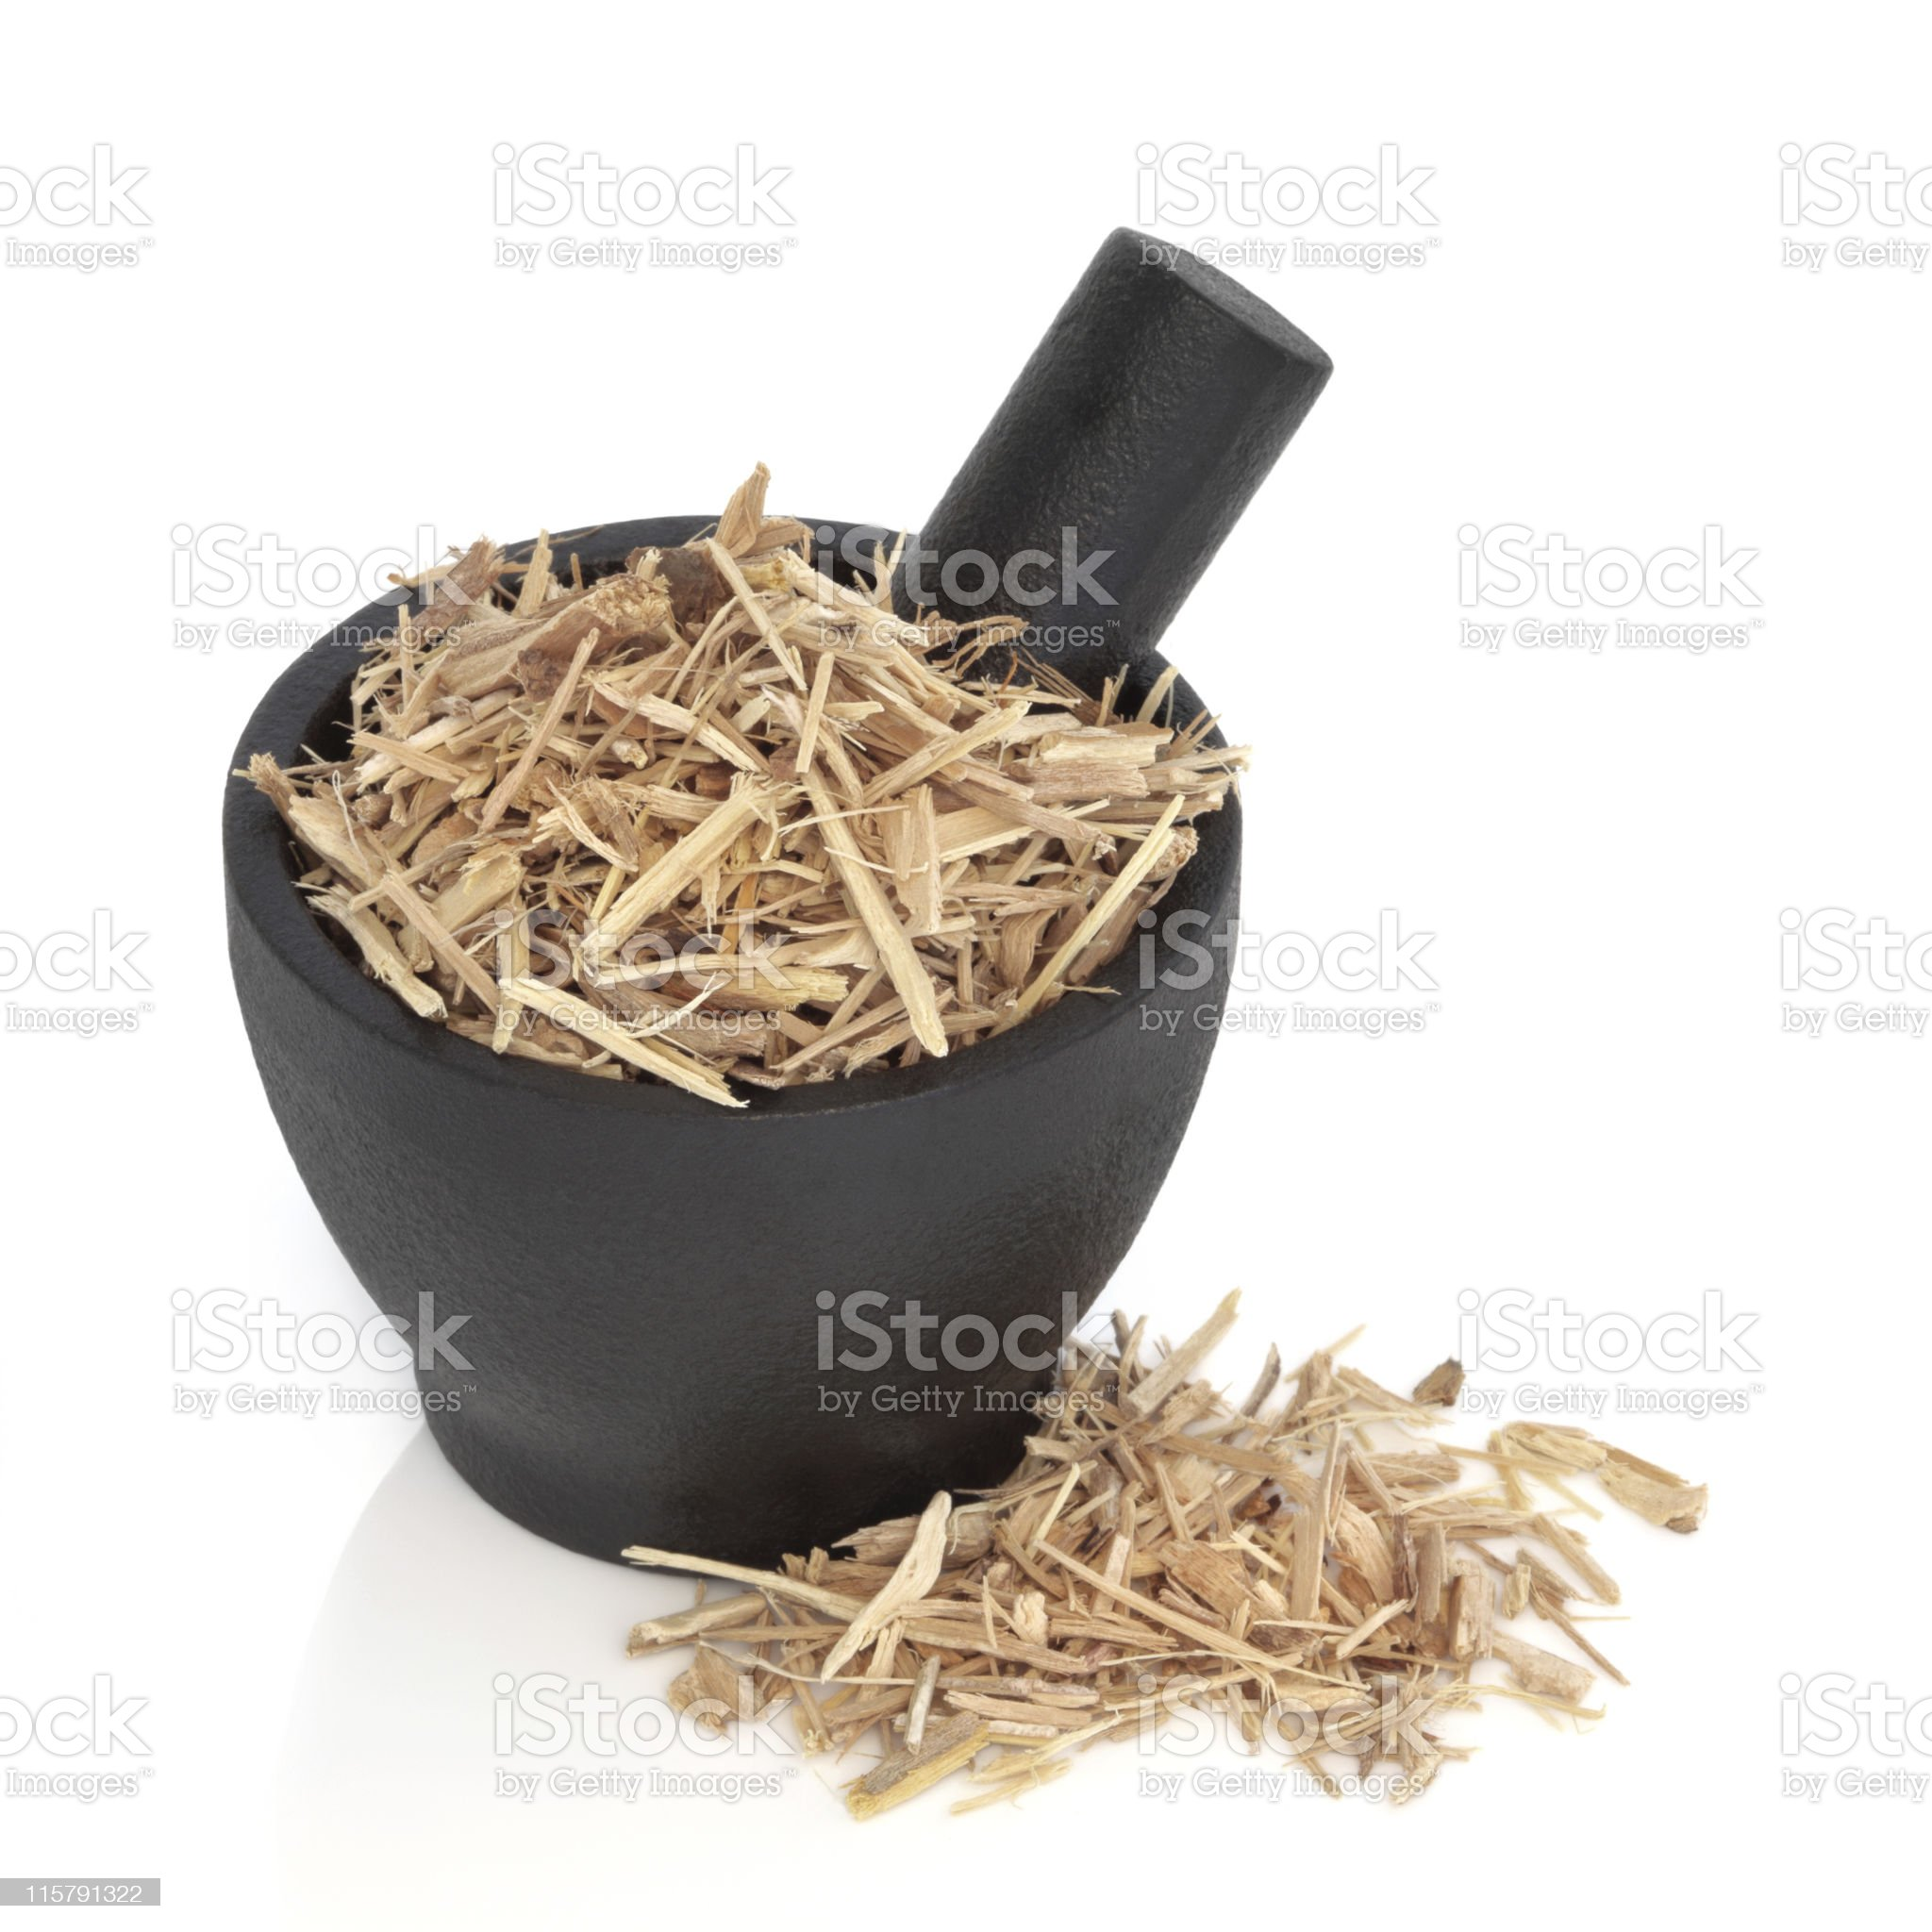 Ginseng Herb royalty-free stock photo